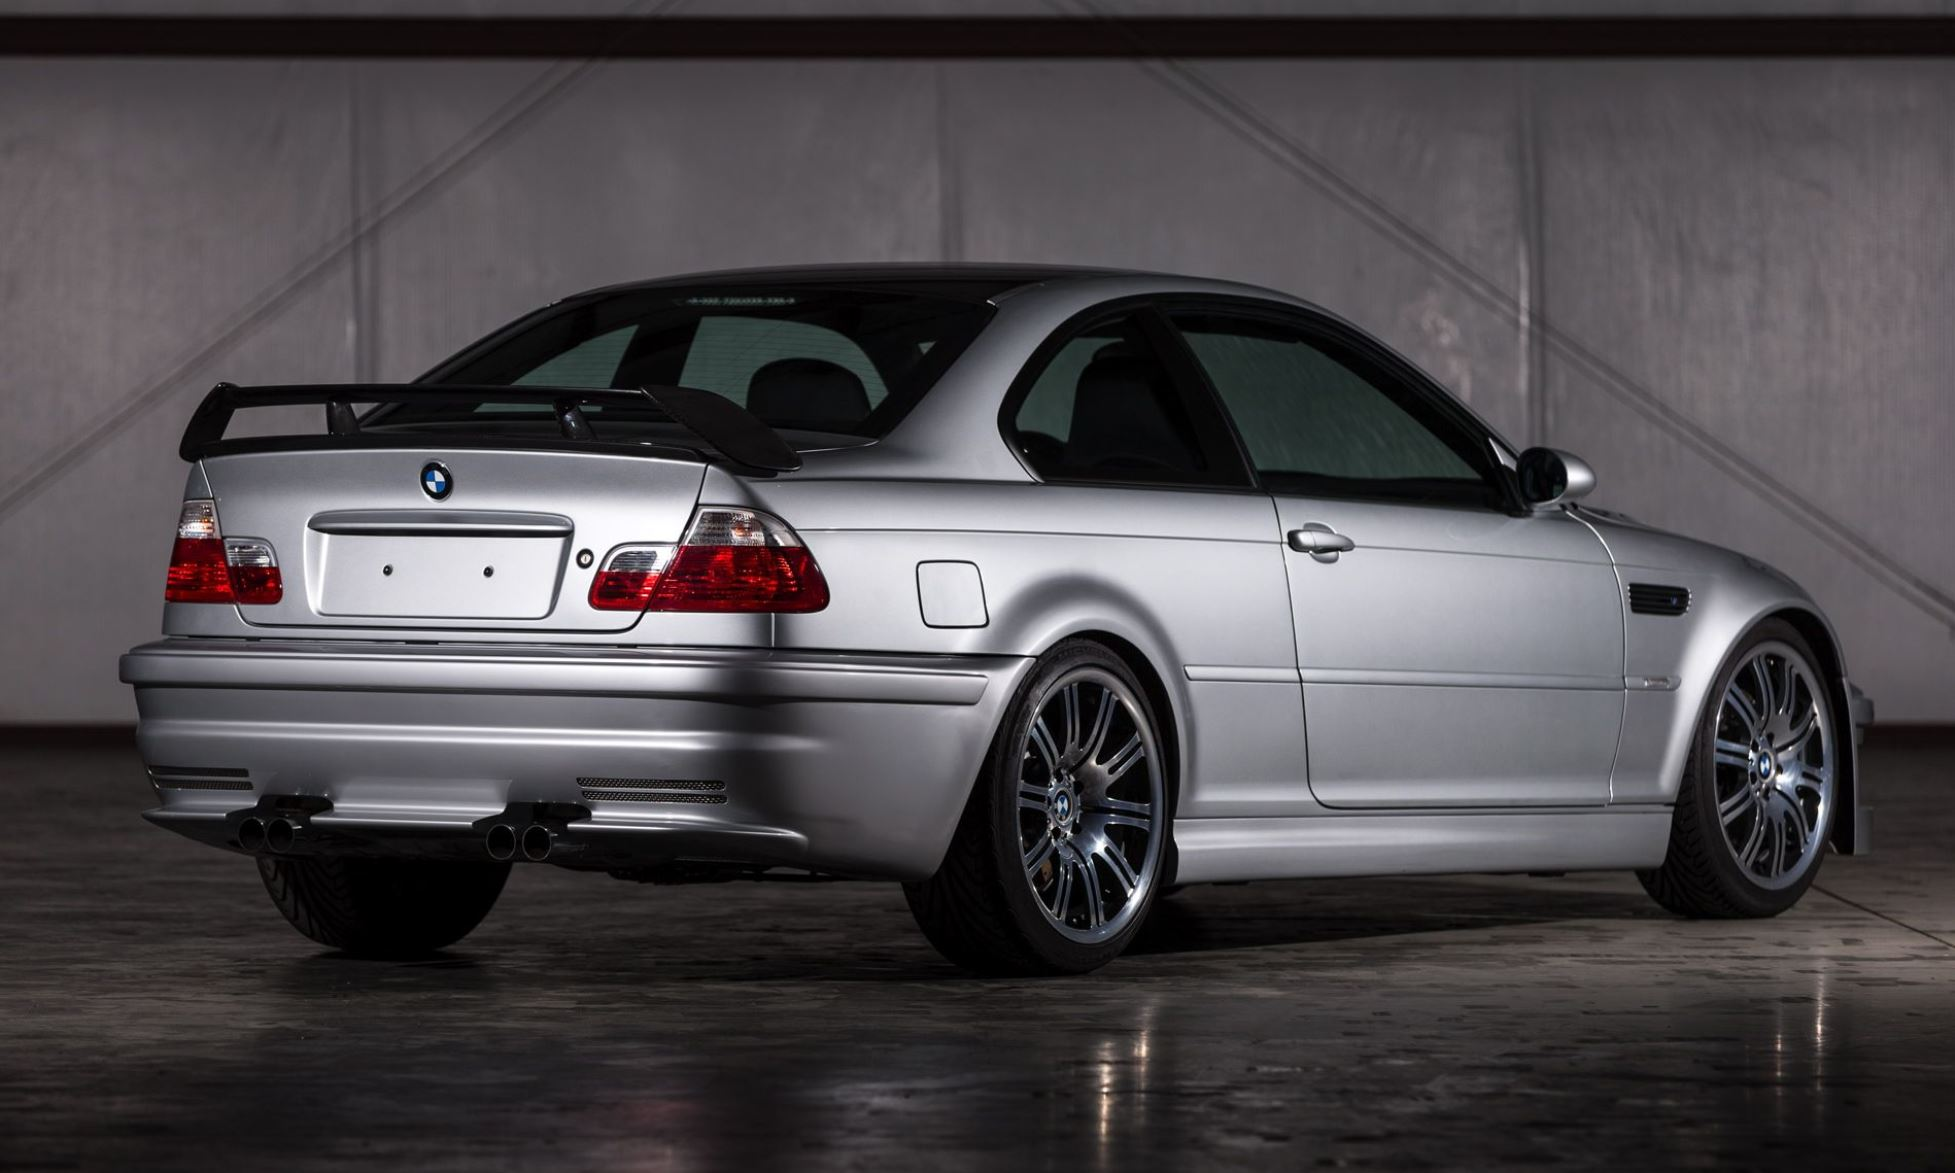 Bmw M3 Gtr Is One Of The Rarest Bmws Ever Produced